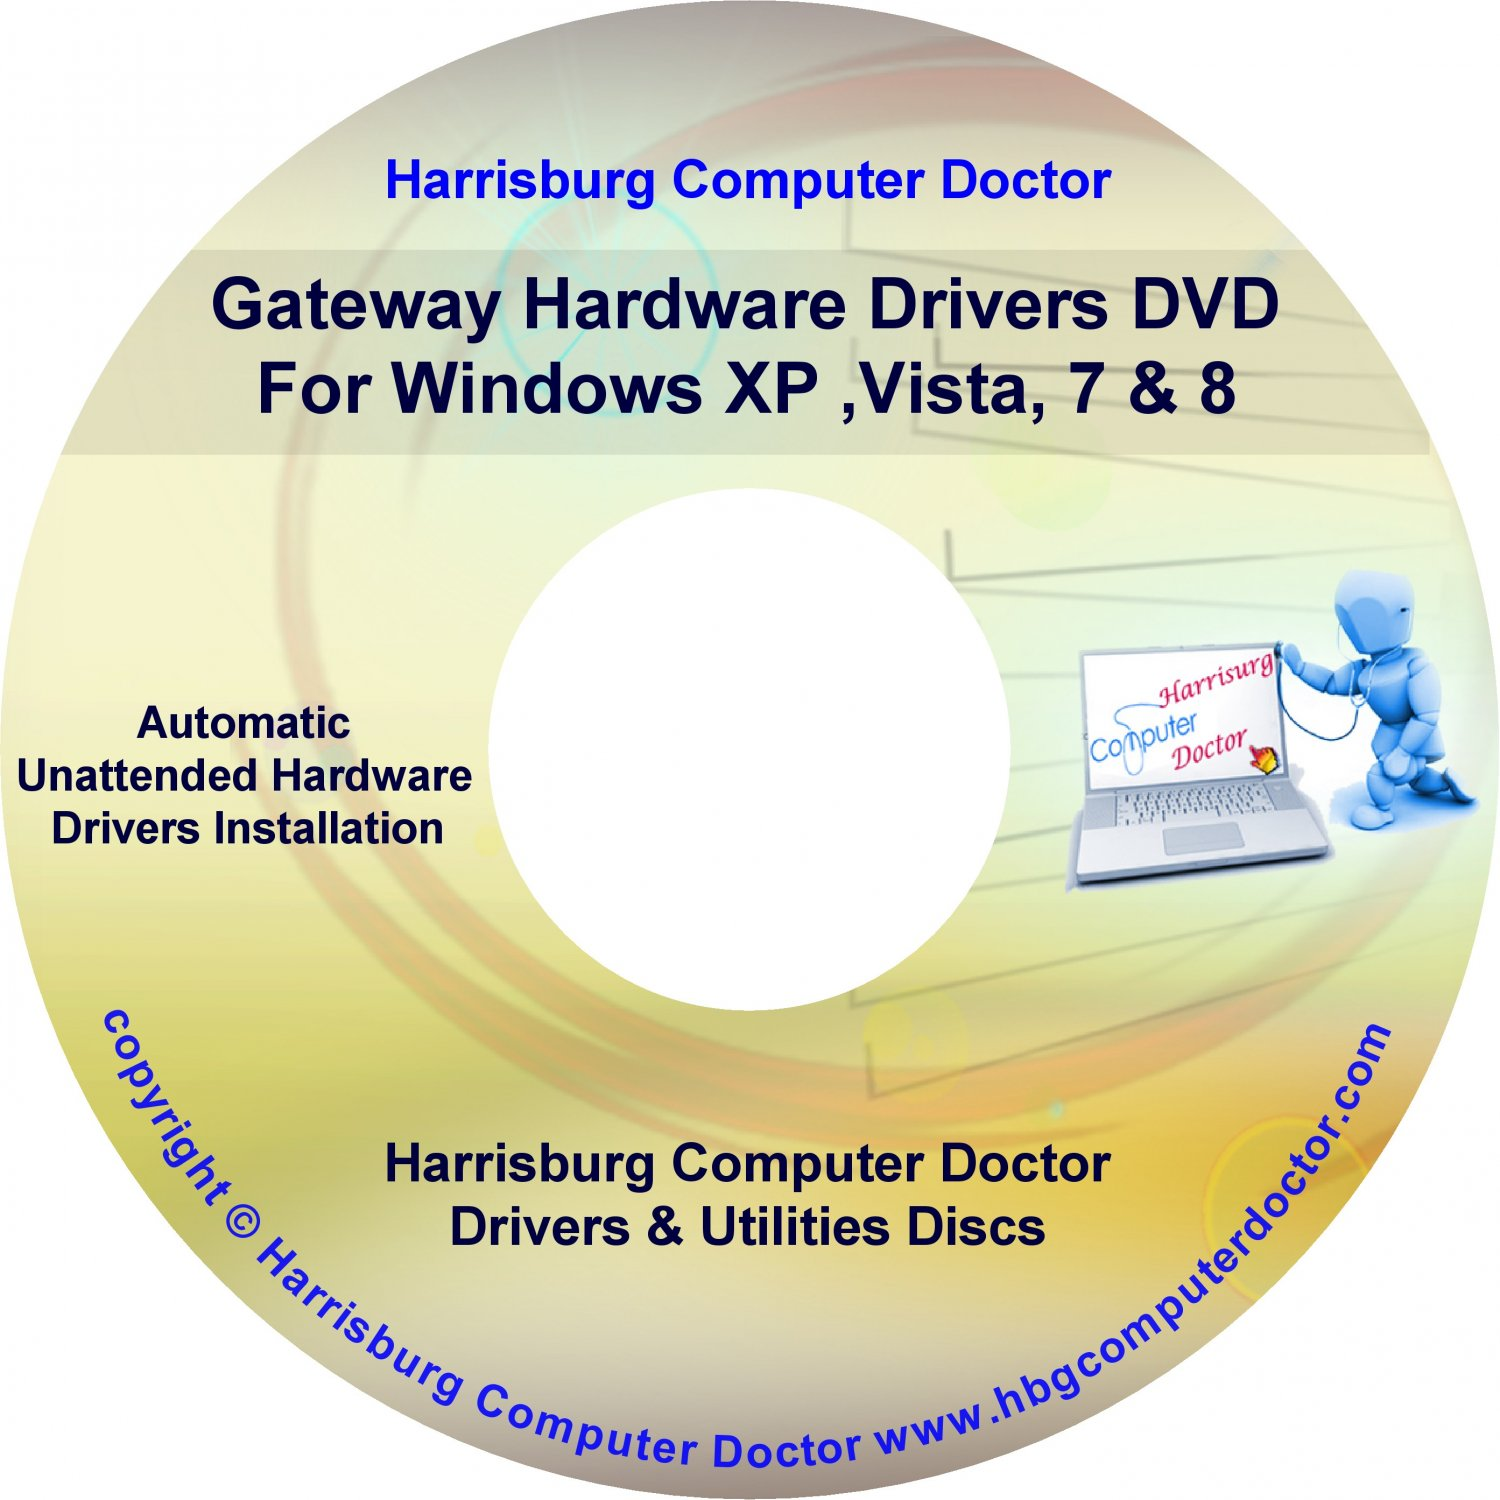 Gateway GT5016h Drivers DVD For Windows, XP, Vista, 7 & 8